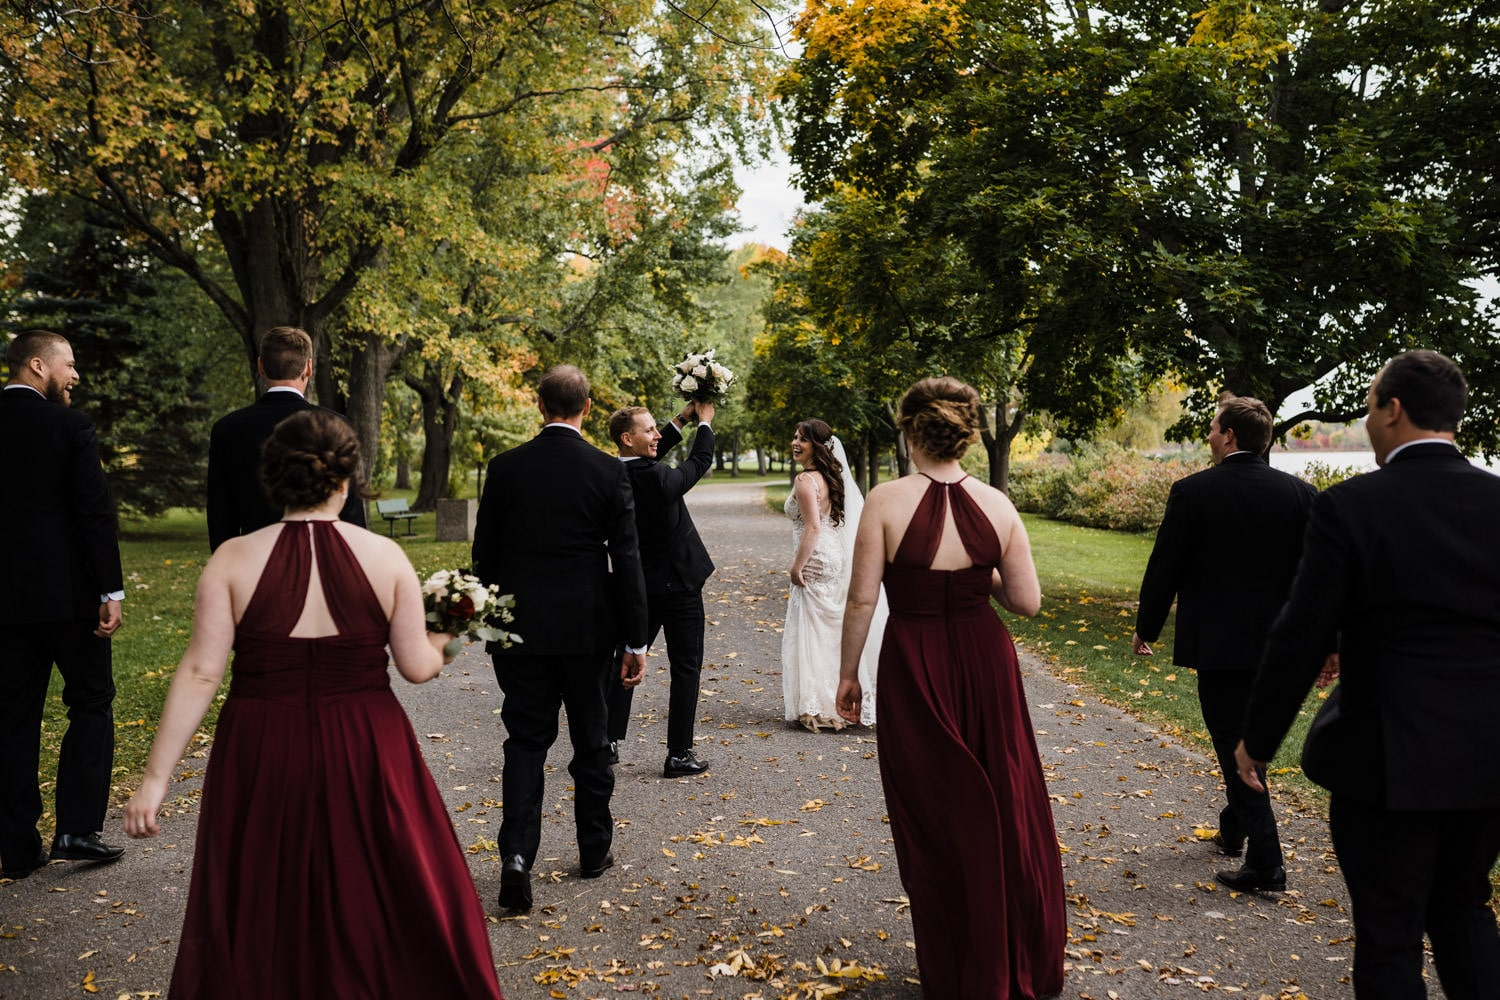 wedding party walks in a park together